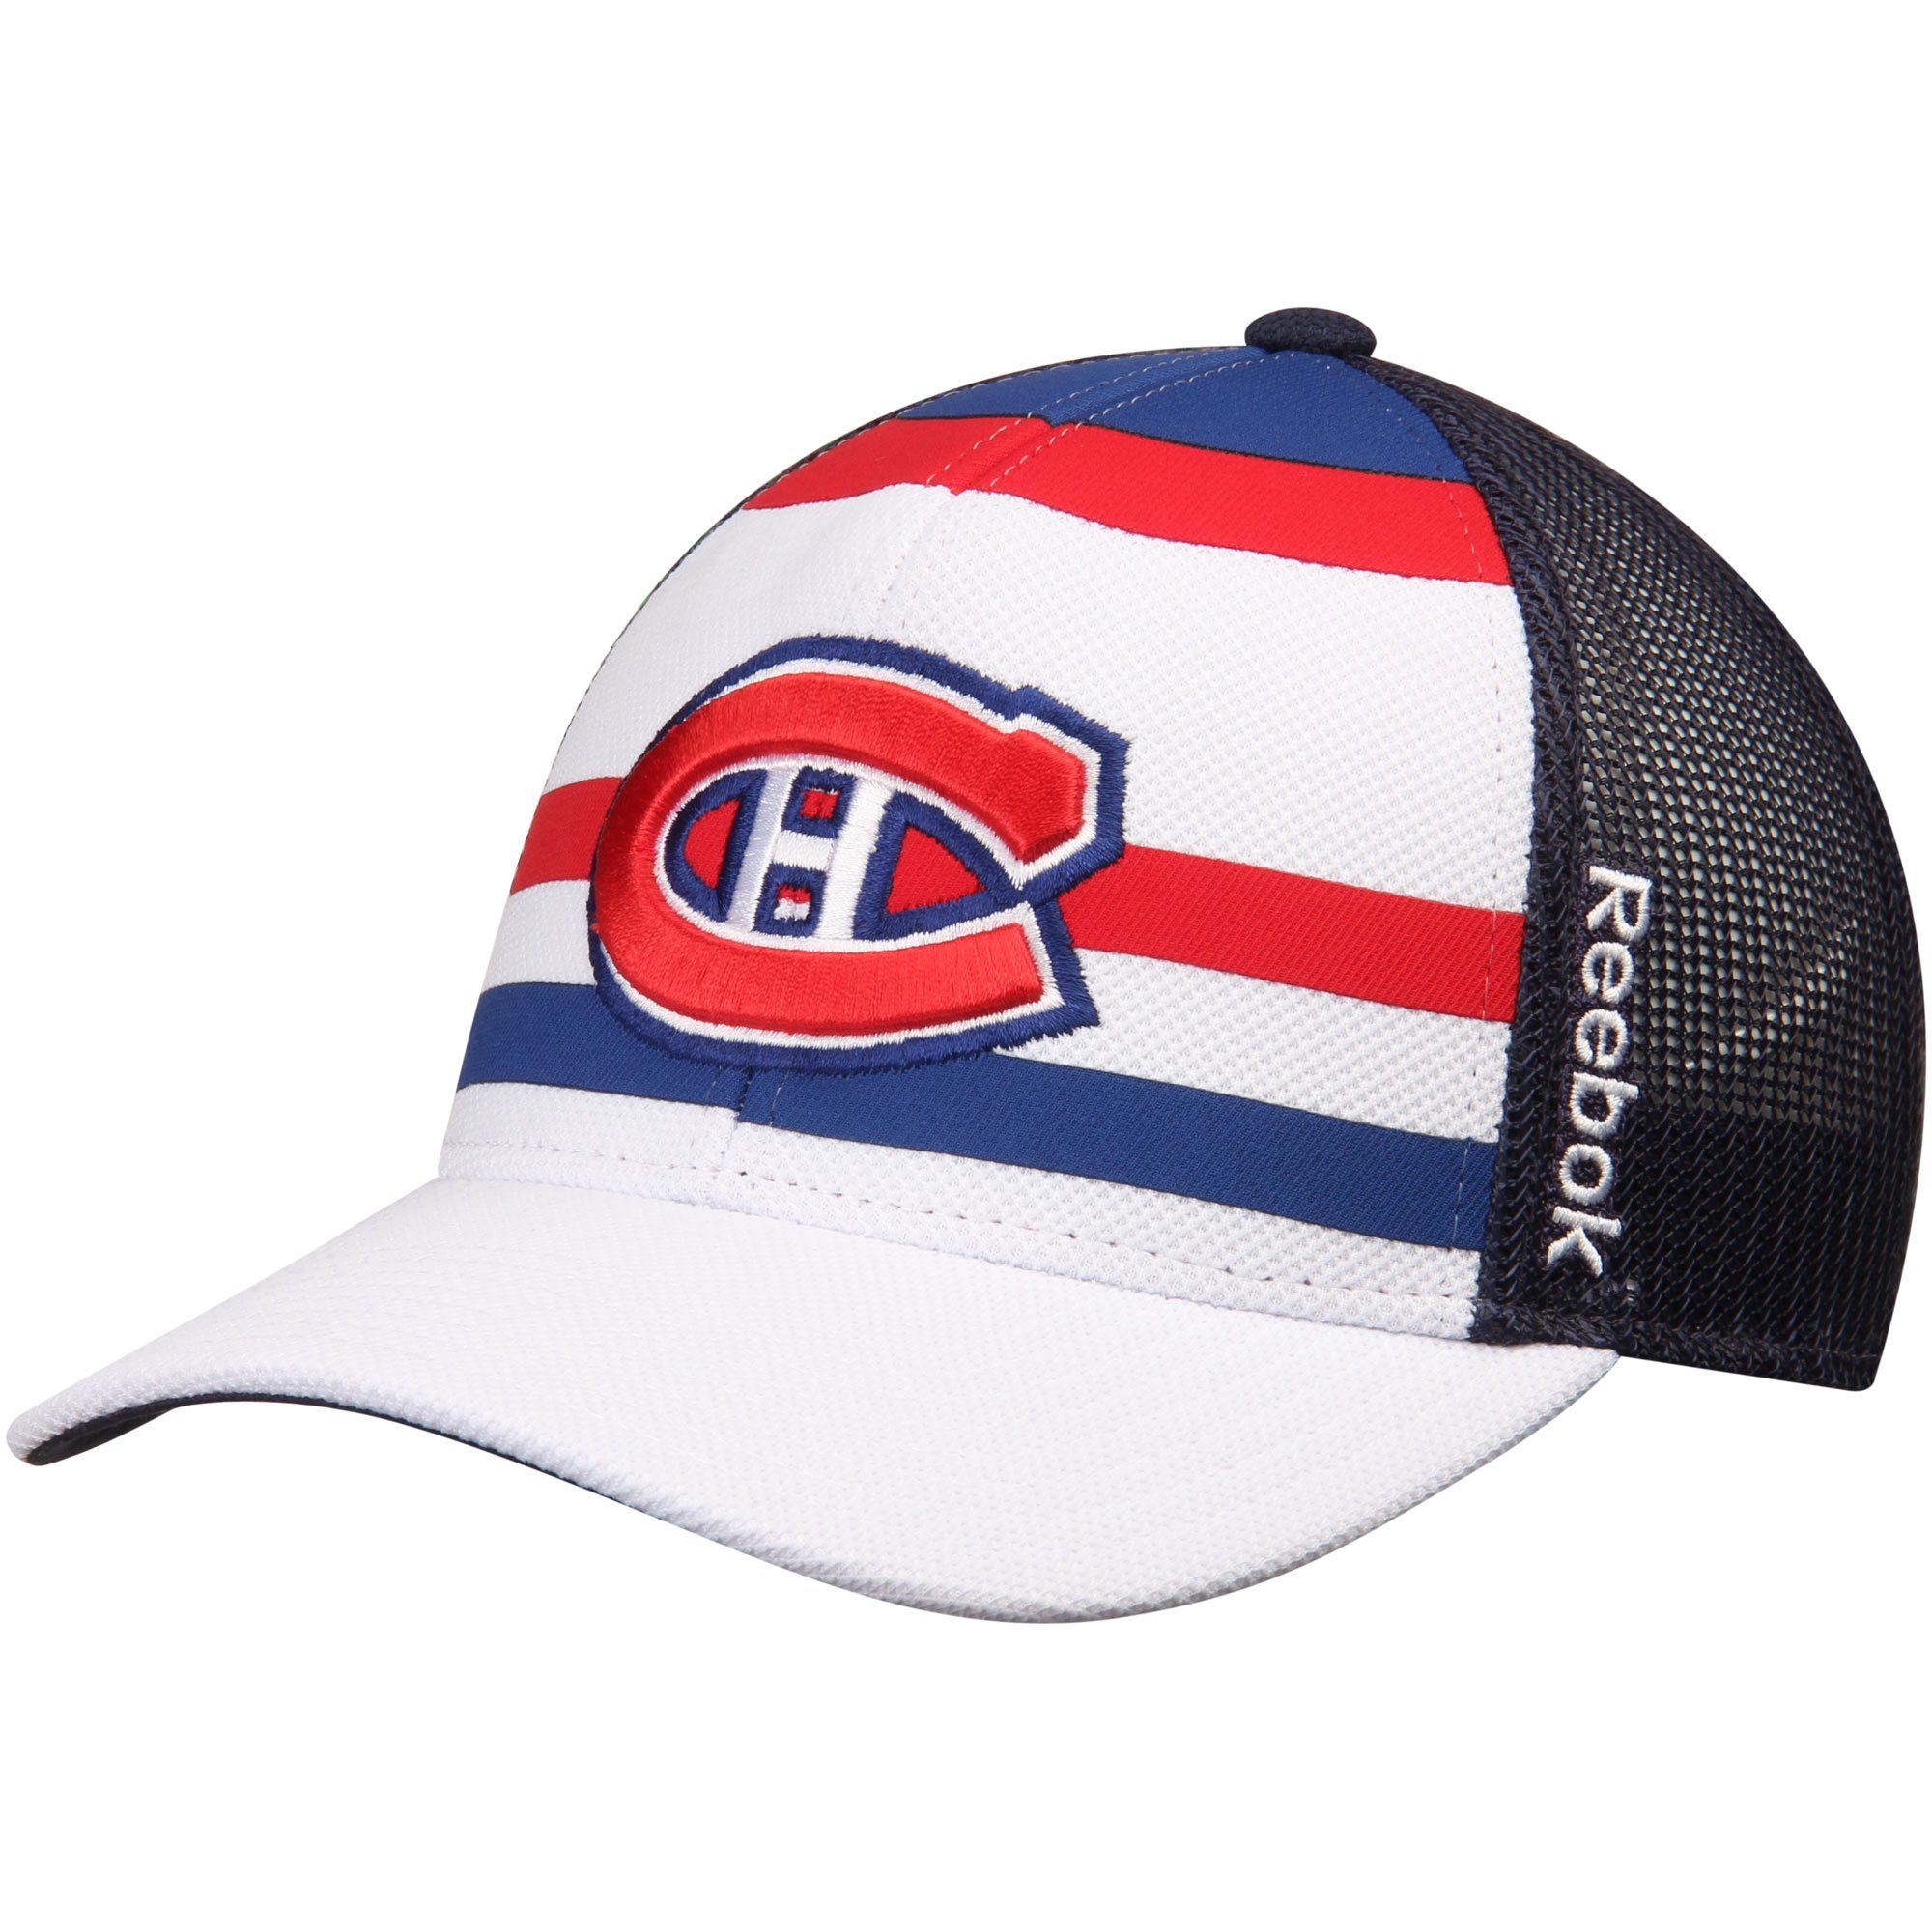 Montreal Canadiens Reebok Face Off Trucker Hat - White/Navy - OSFA